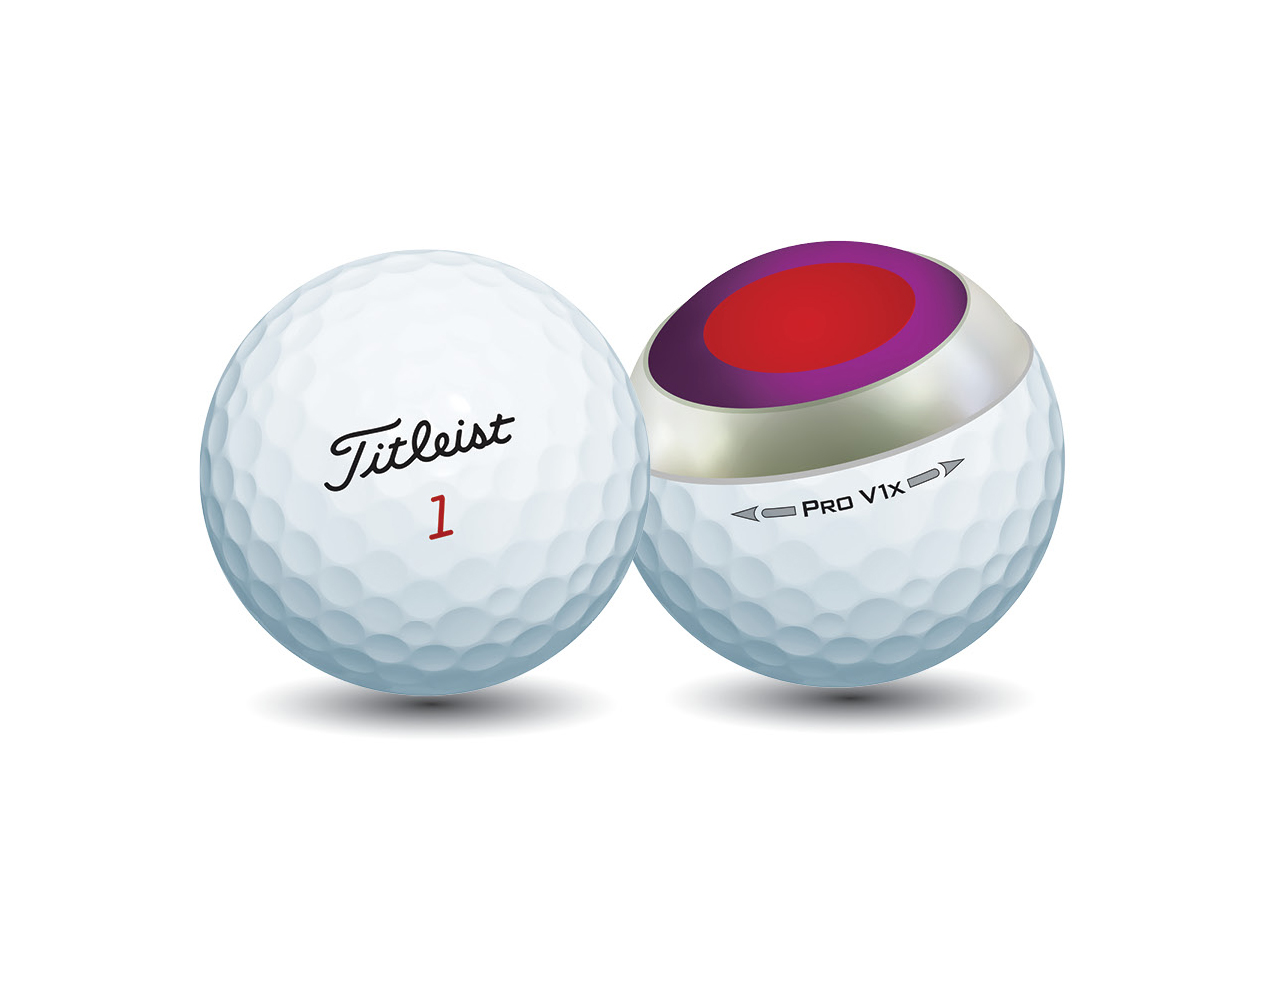 Titleist Pro V1x is a 4-piece ball with firmer feel than Pro V1